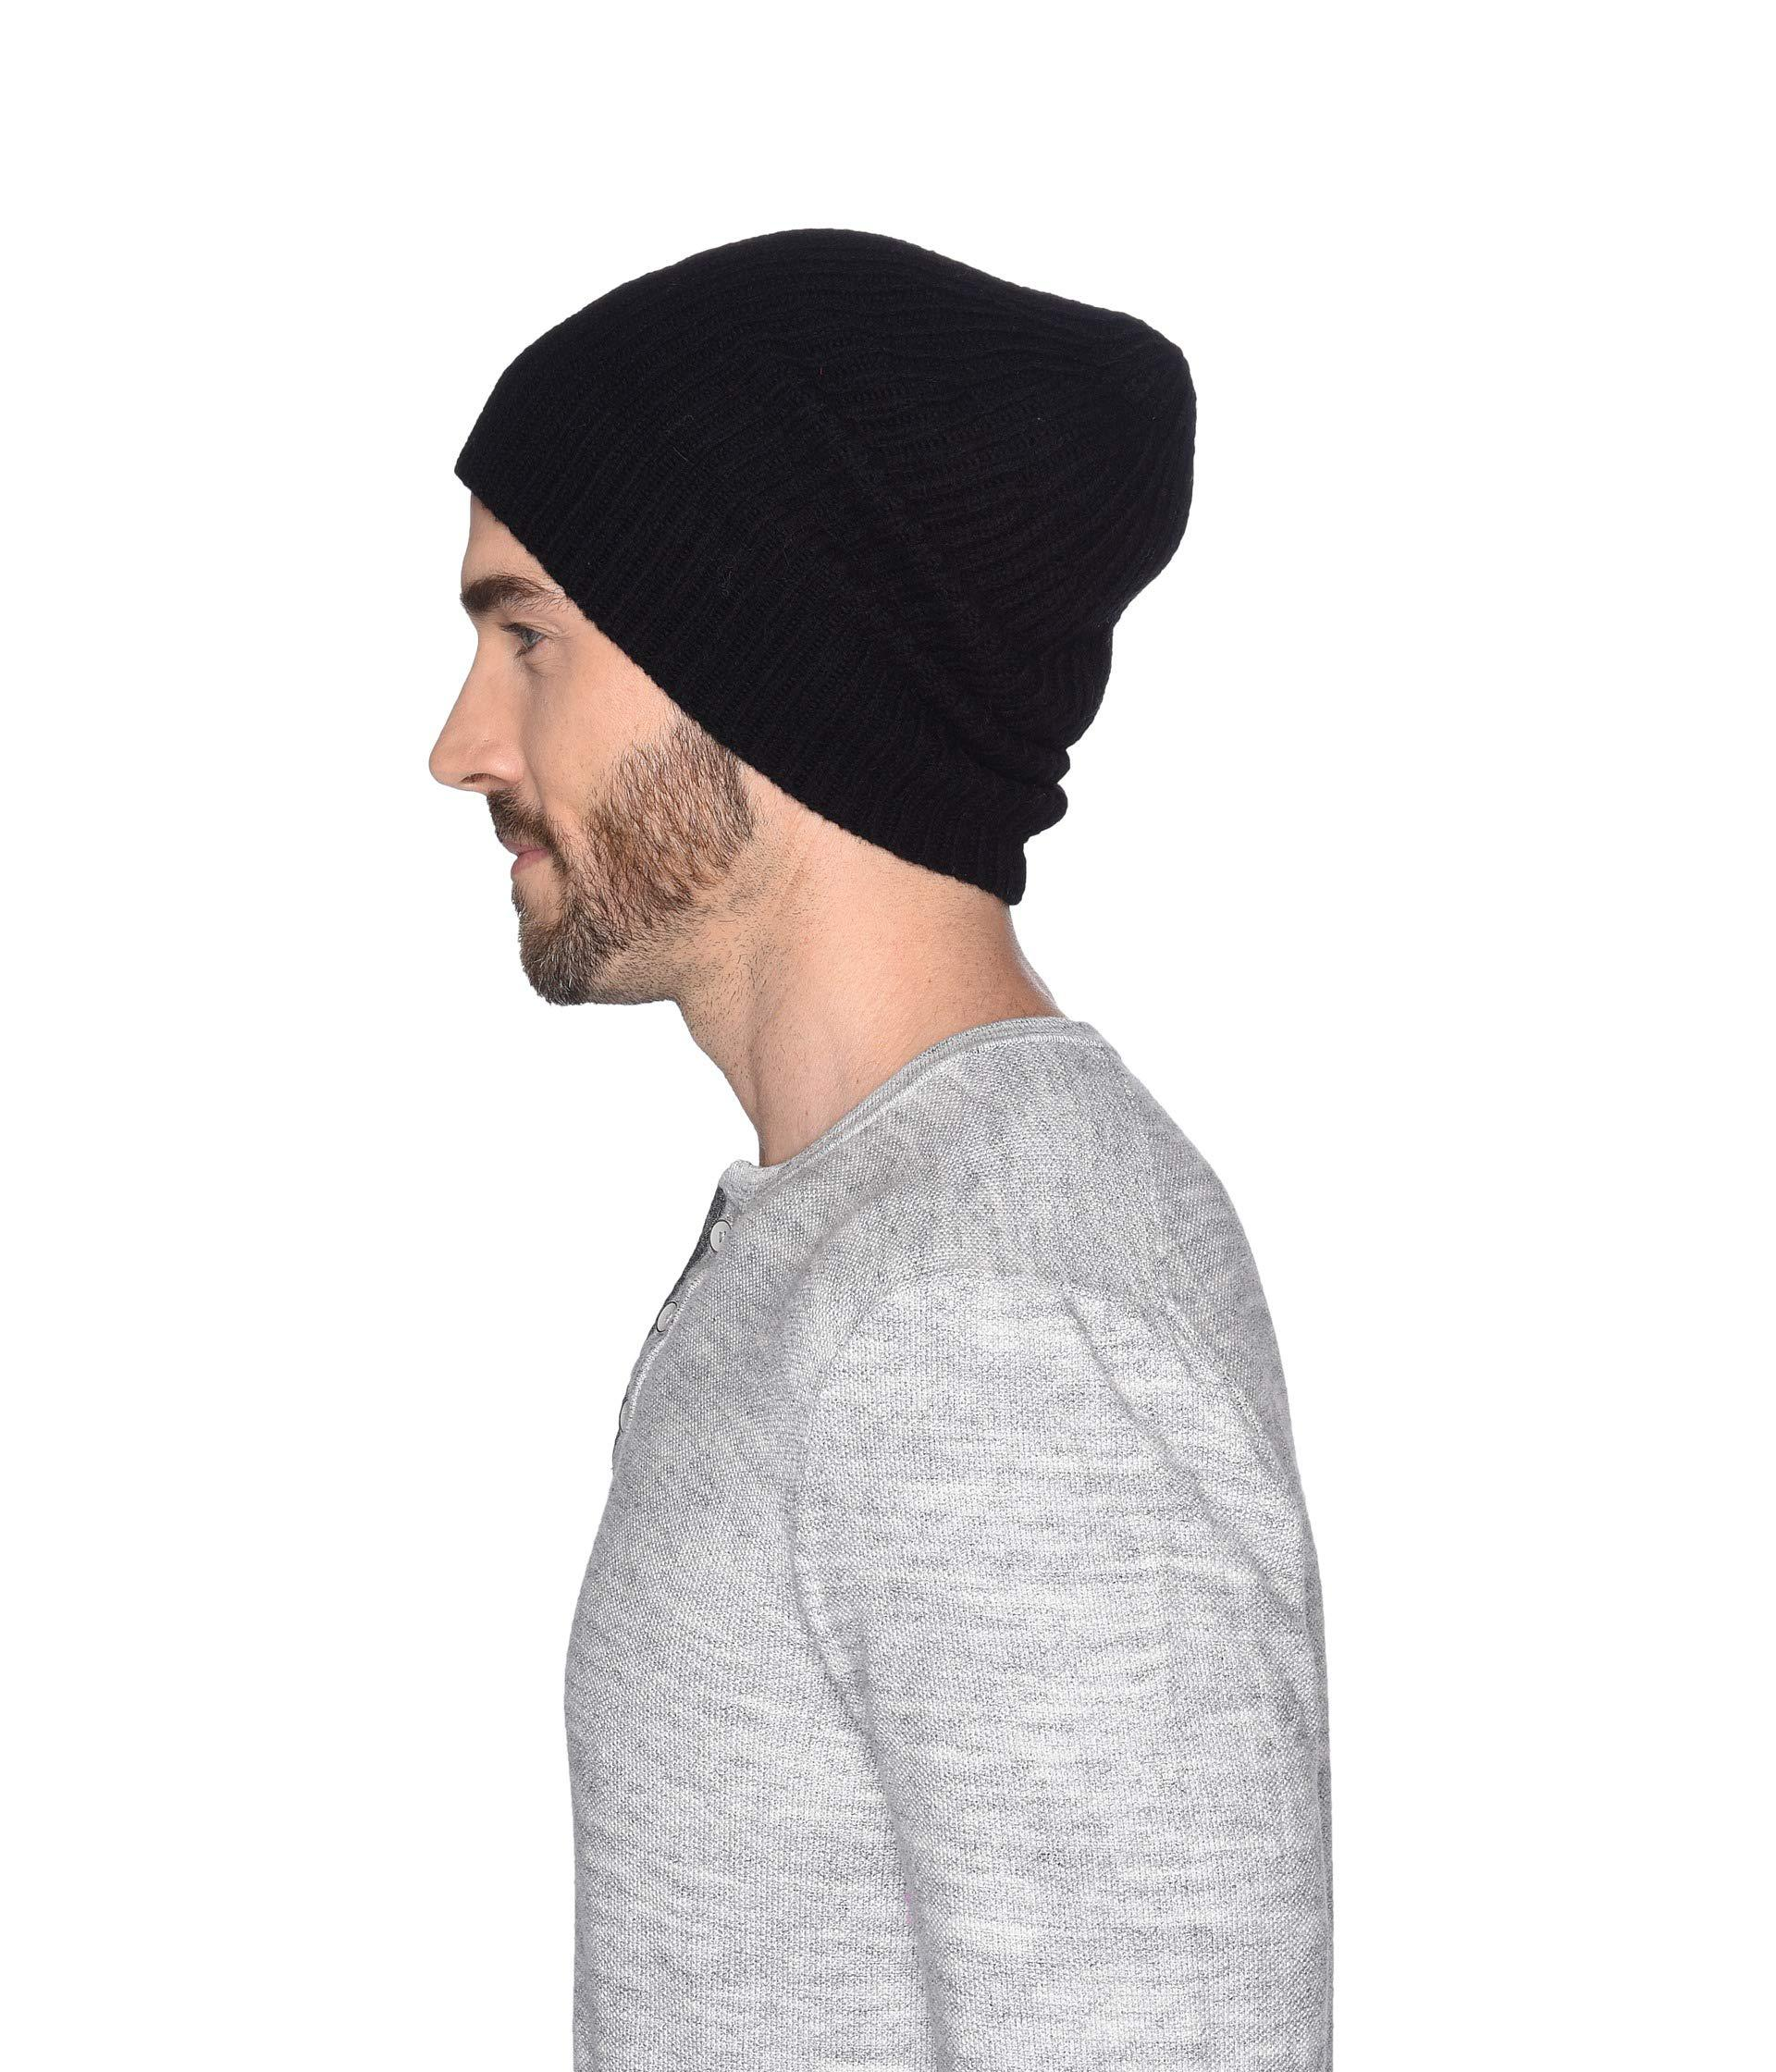 36604cb9 UGG Stonewashed Cuff Knit Hat (black) Beanies in Black for Men - Lyst